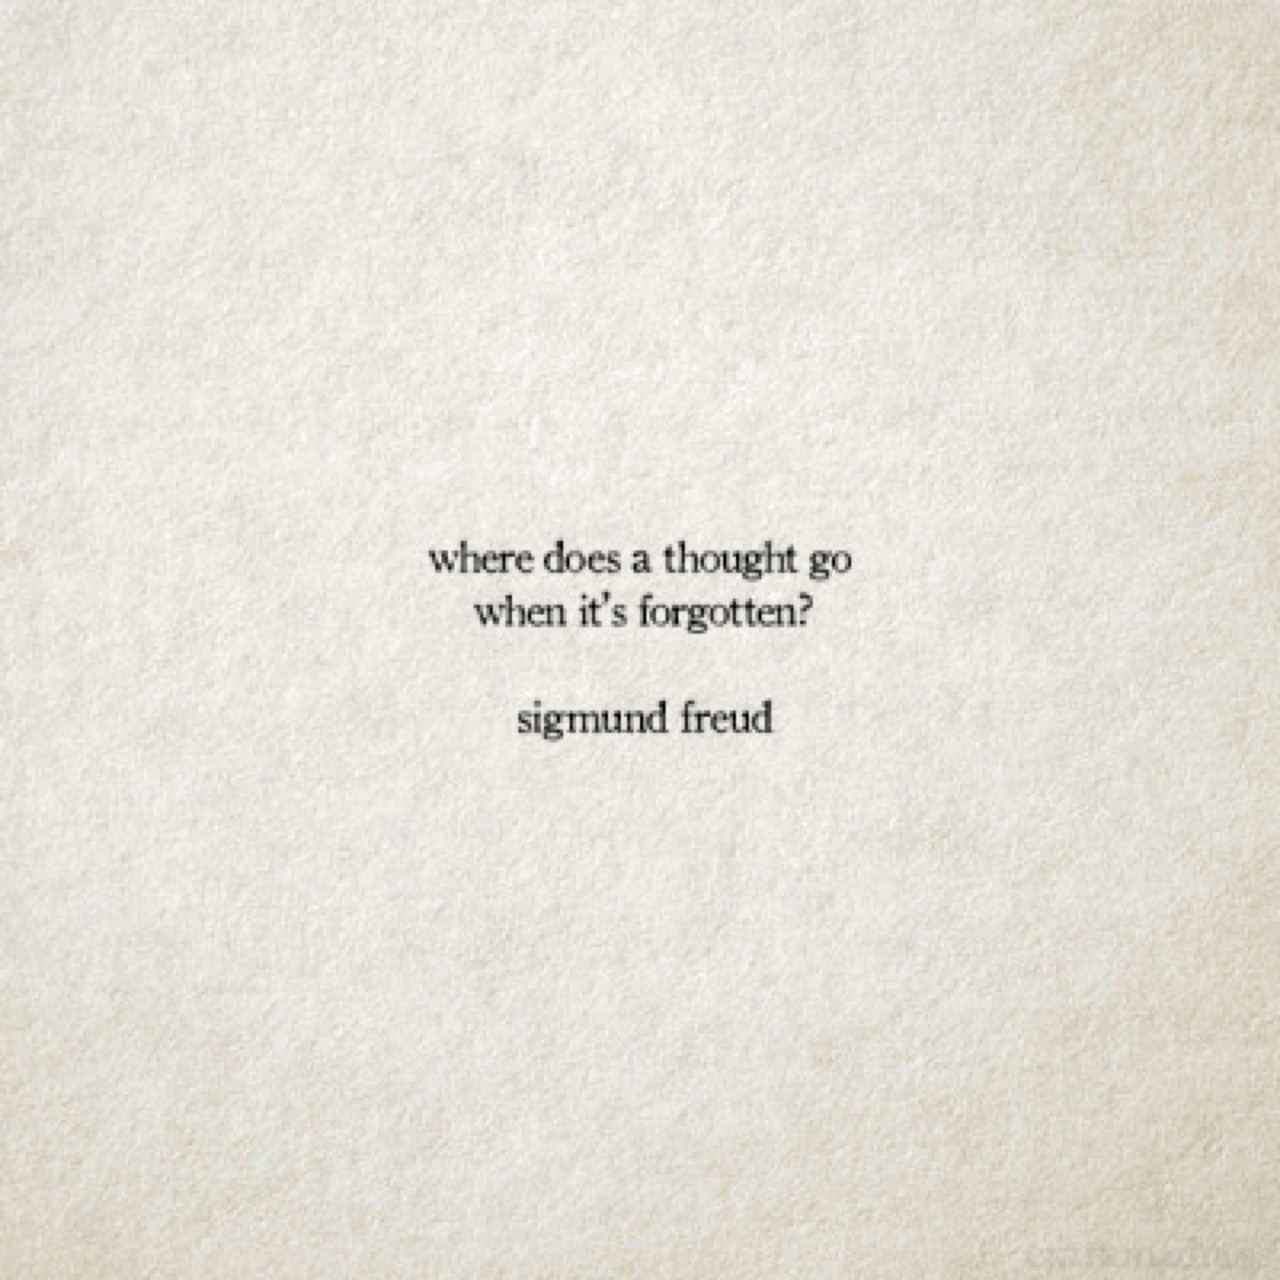 867 Images About Nyctophilia On We Heart It See More About